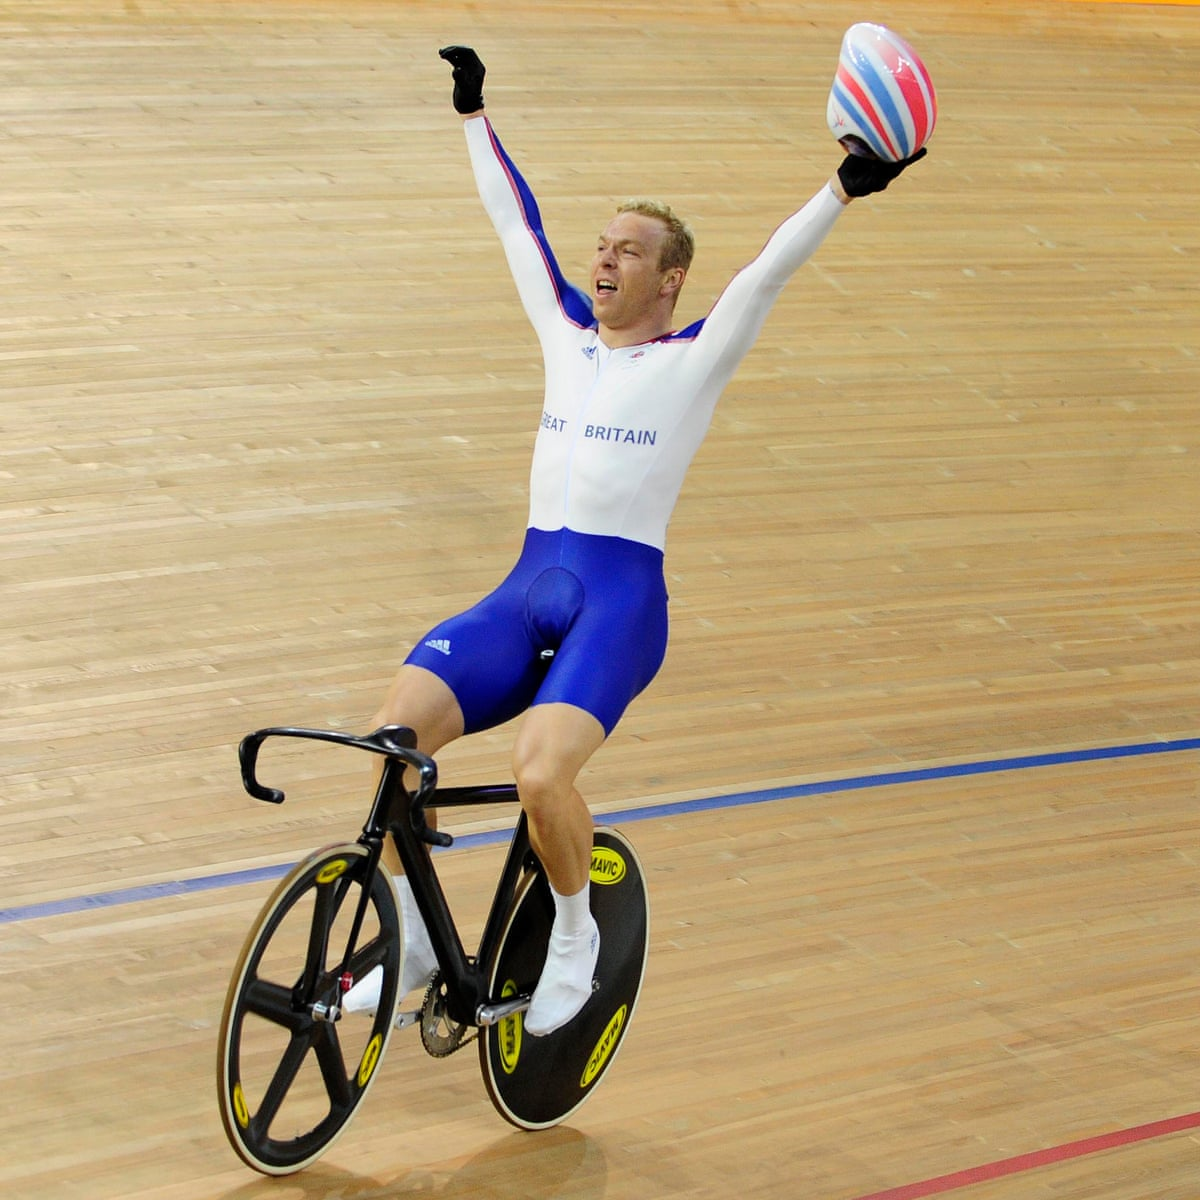 Chris Hoy I Had No Natural Ability As A Cyclist Books The Guardian